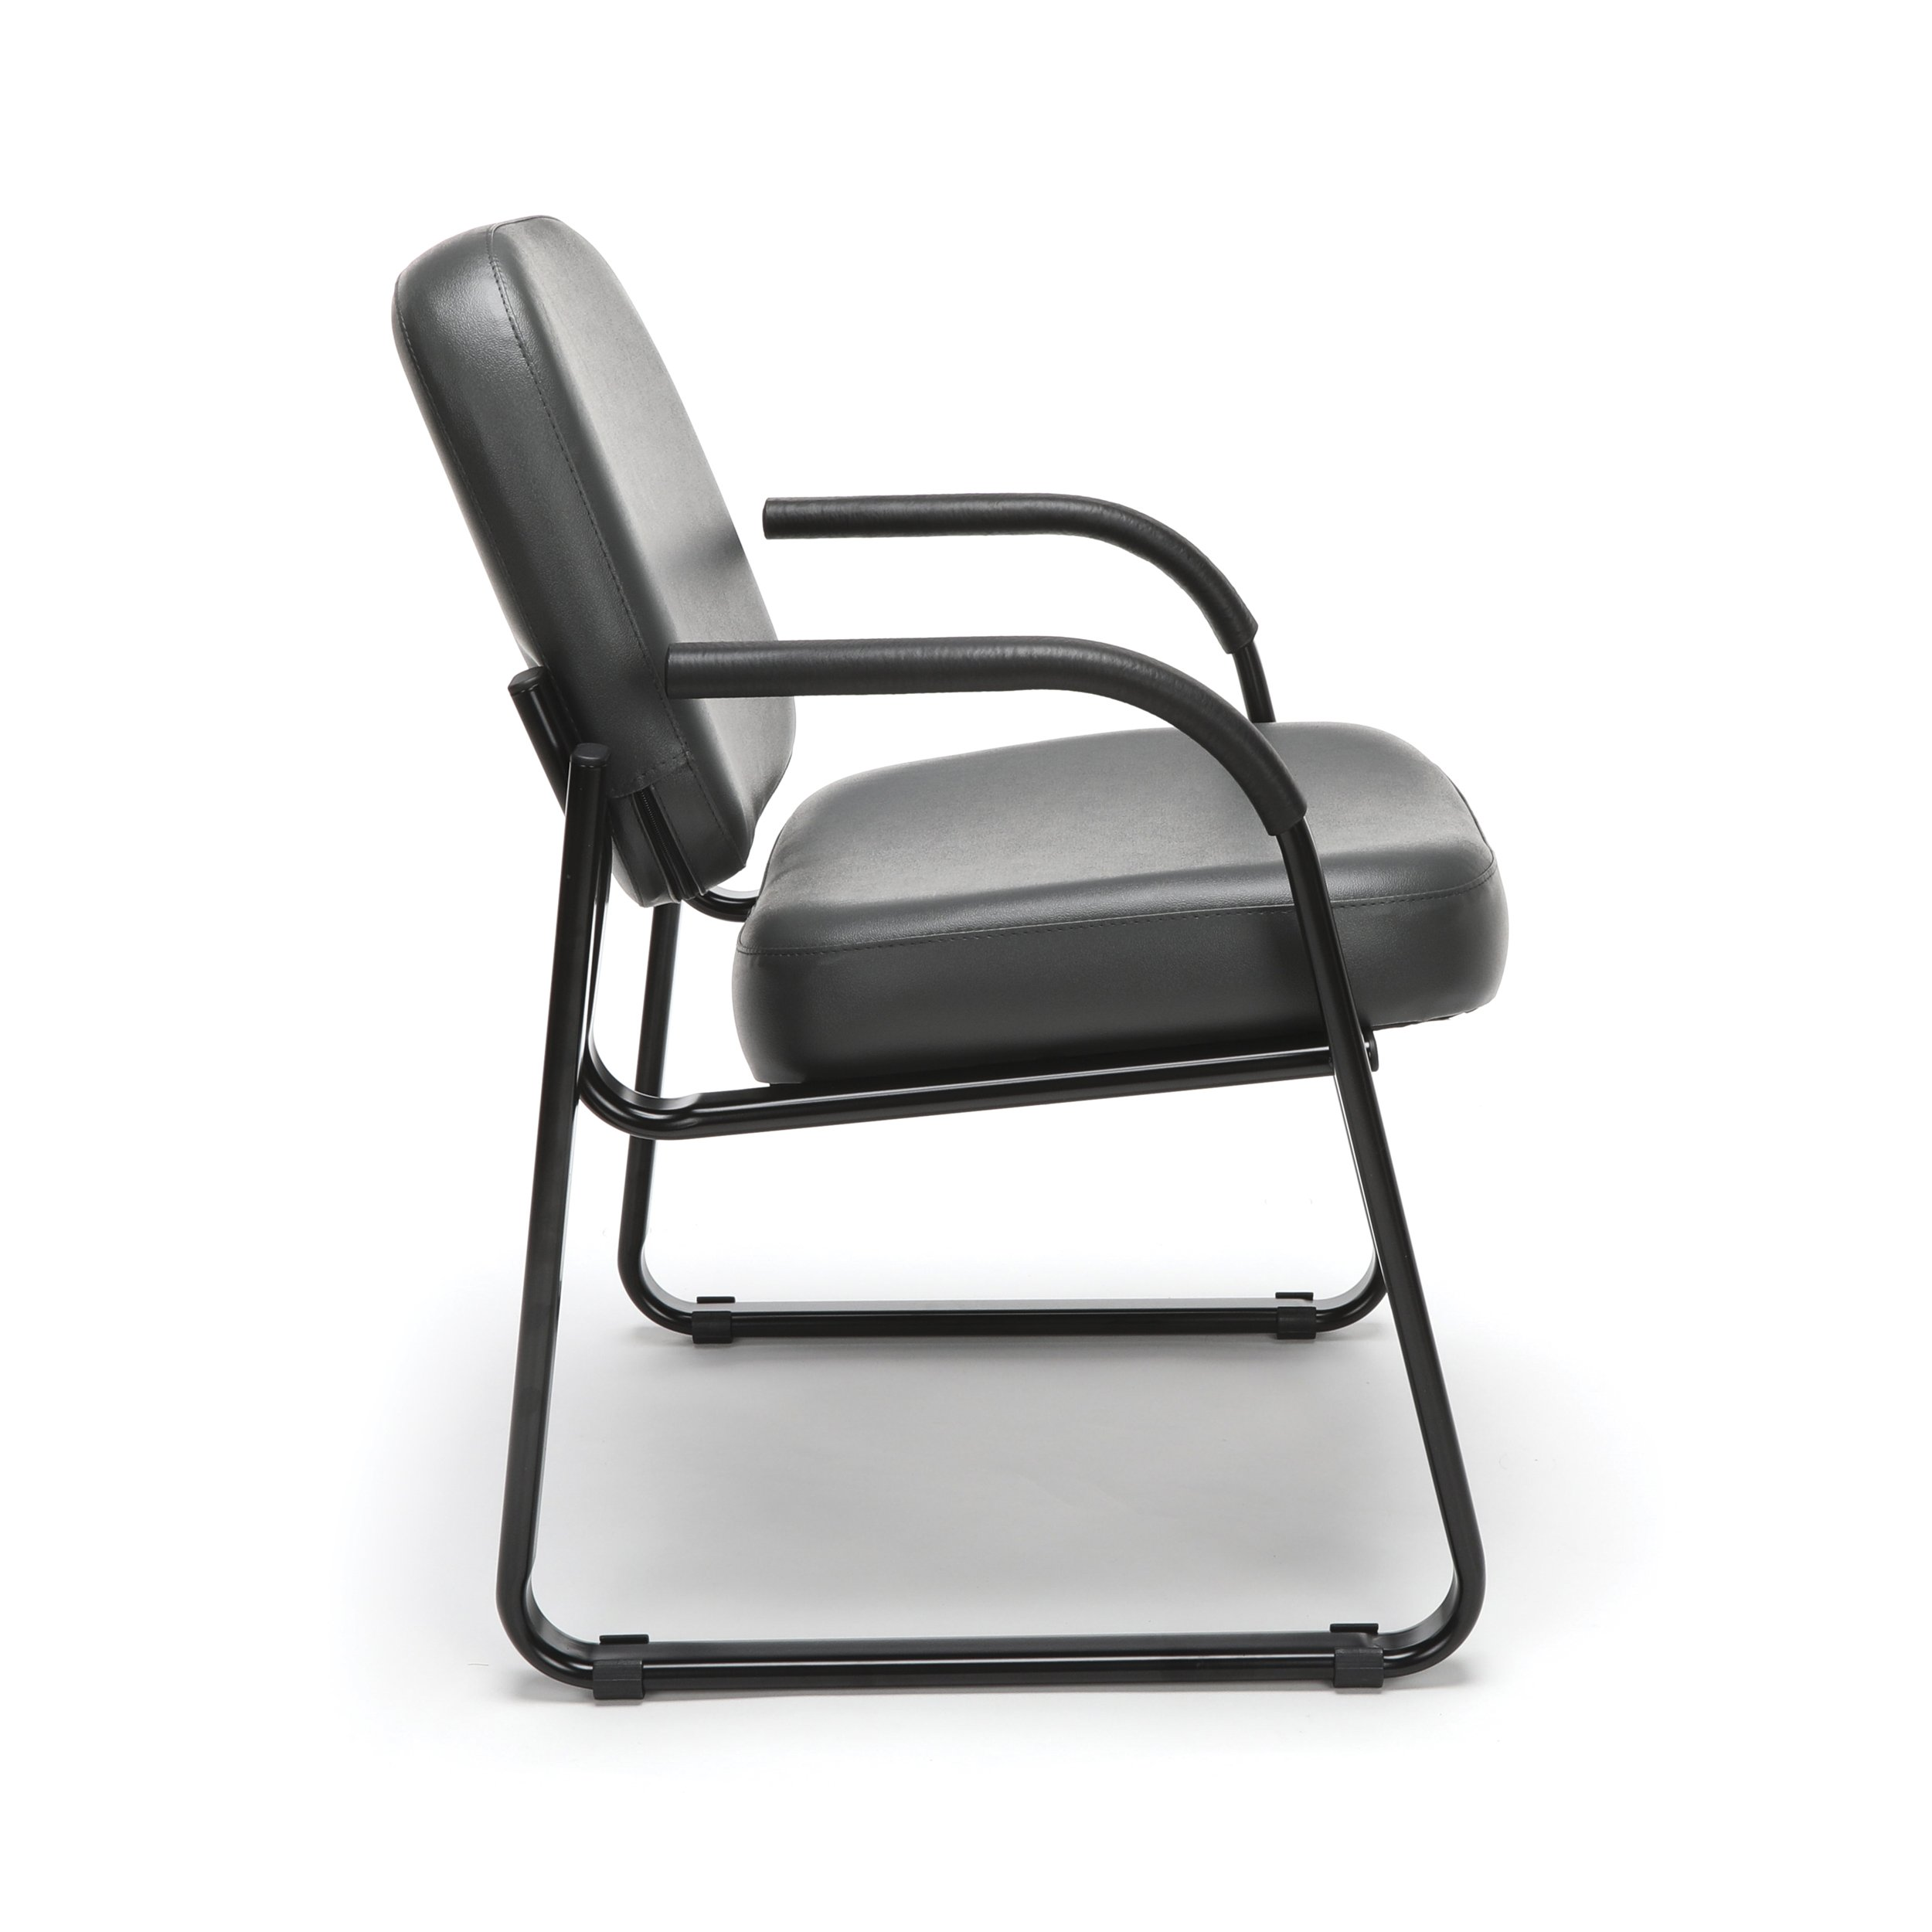 OFM Reception Chair with Arms - Anti-Microbial/Anti-Bacterial Vinyl Guest Chair, Charcoal (403-VAM) by OFM (Image #4)